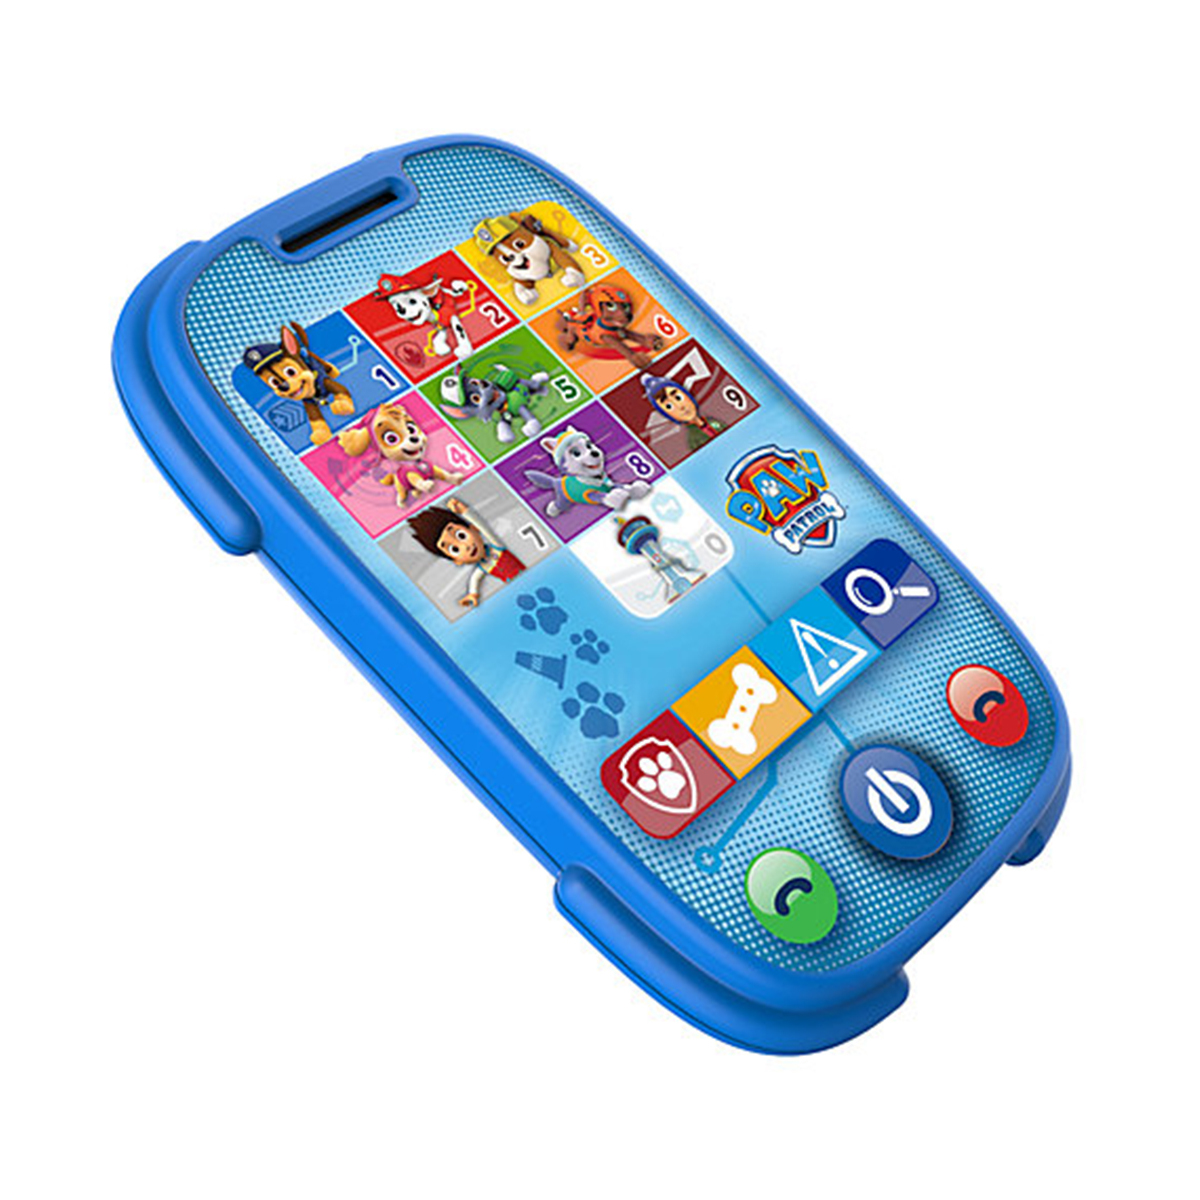 Paw Patrol My First SmartPhone Smart Phone Activity Toy - Click Image to Close